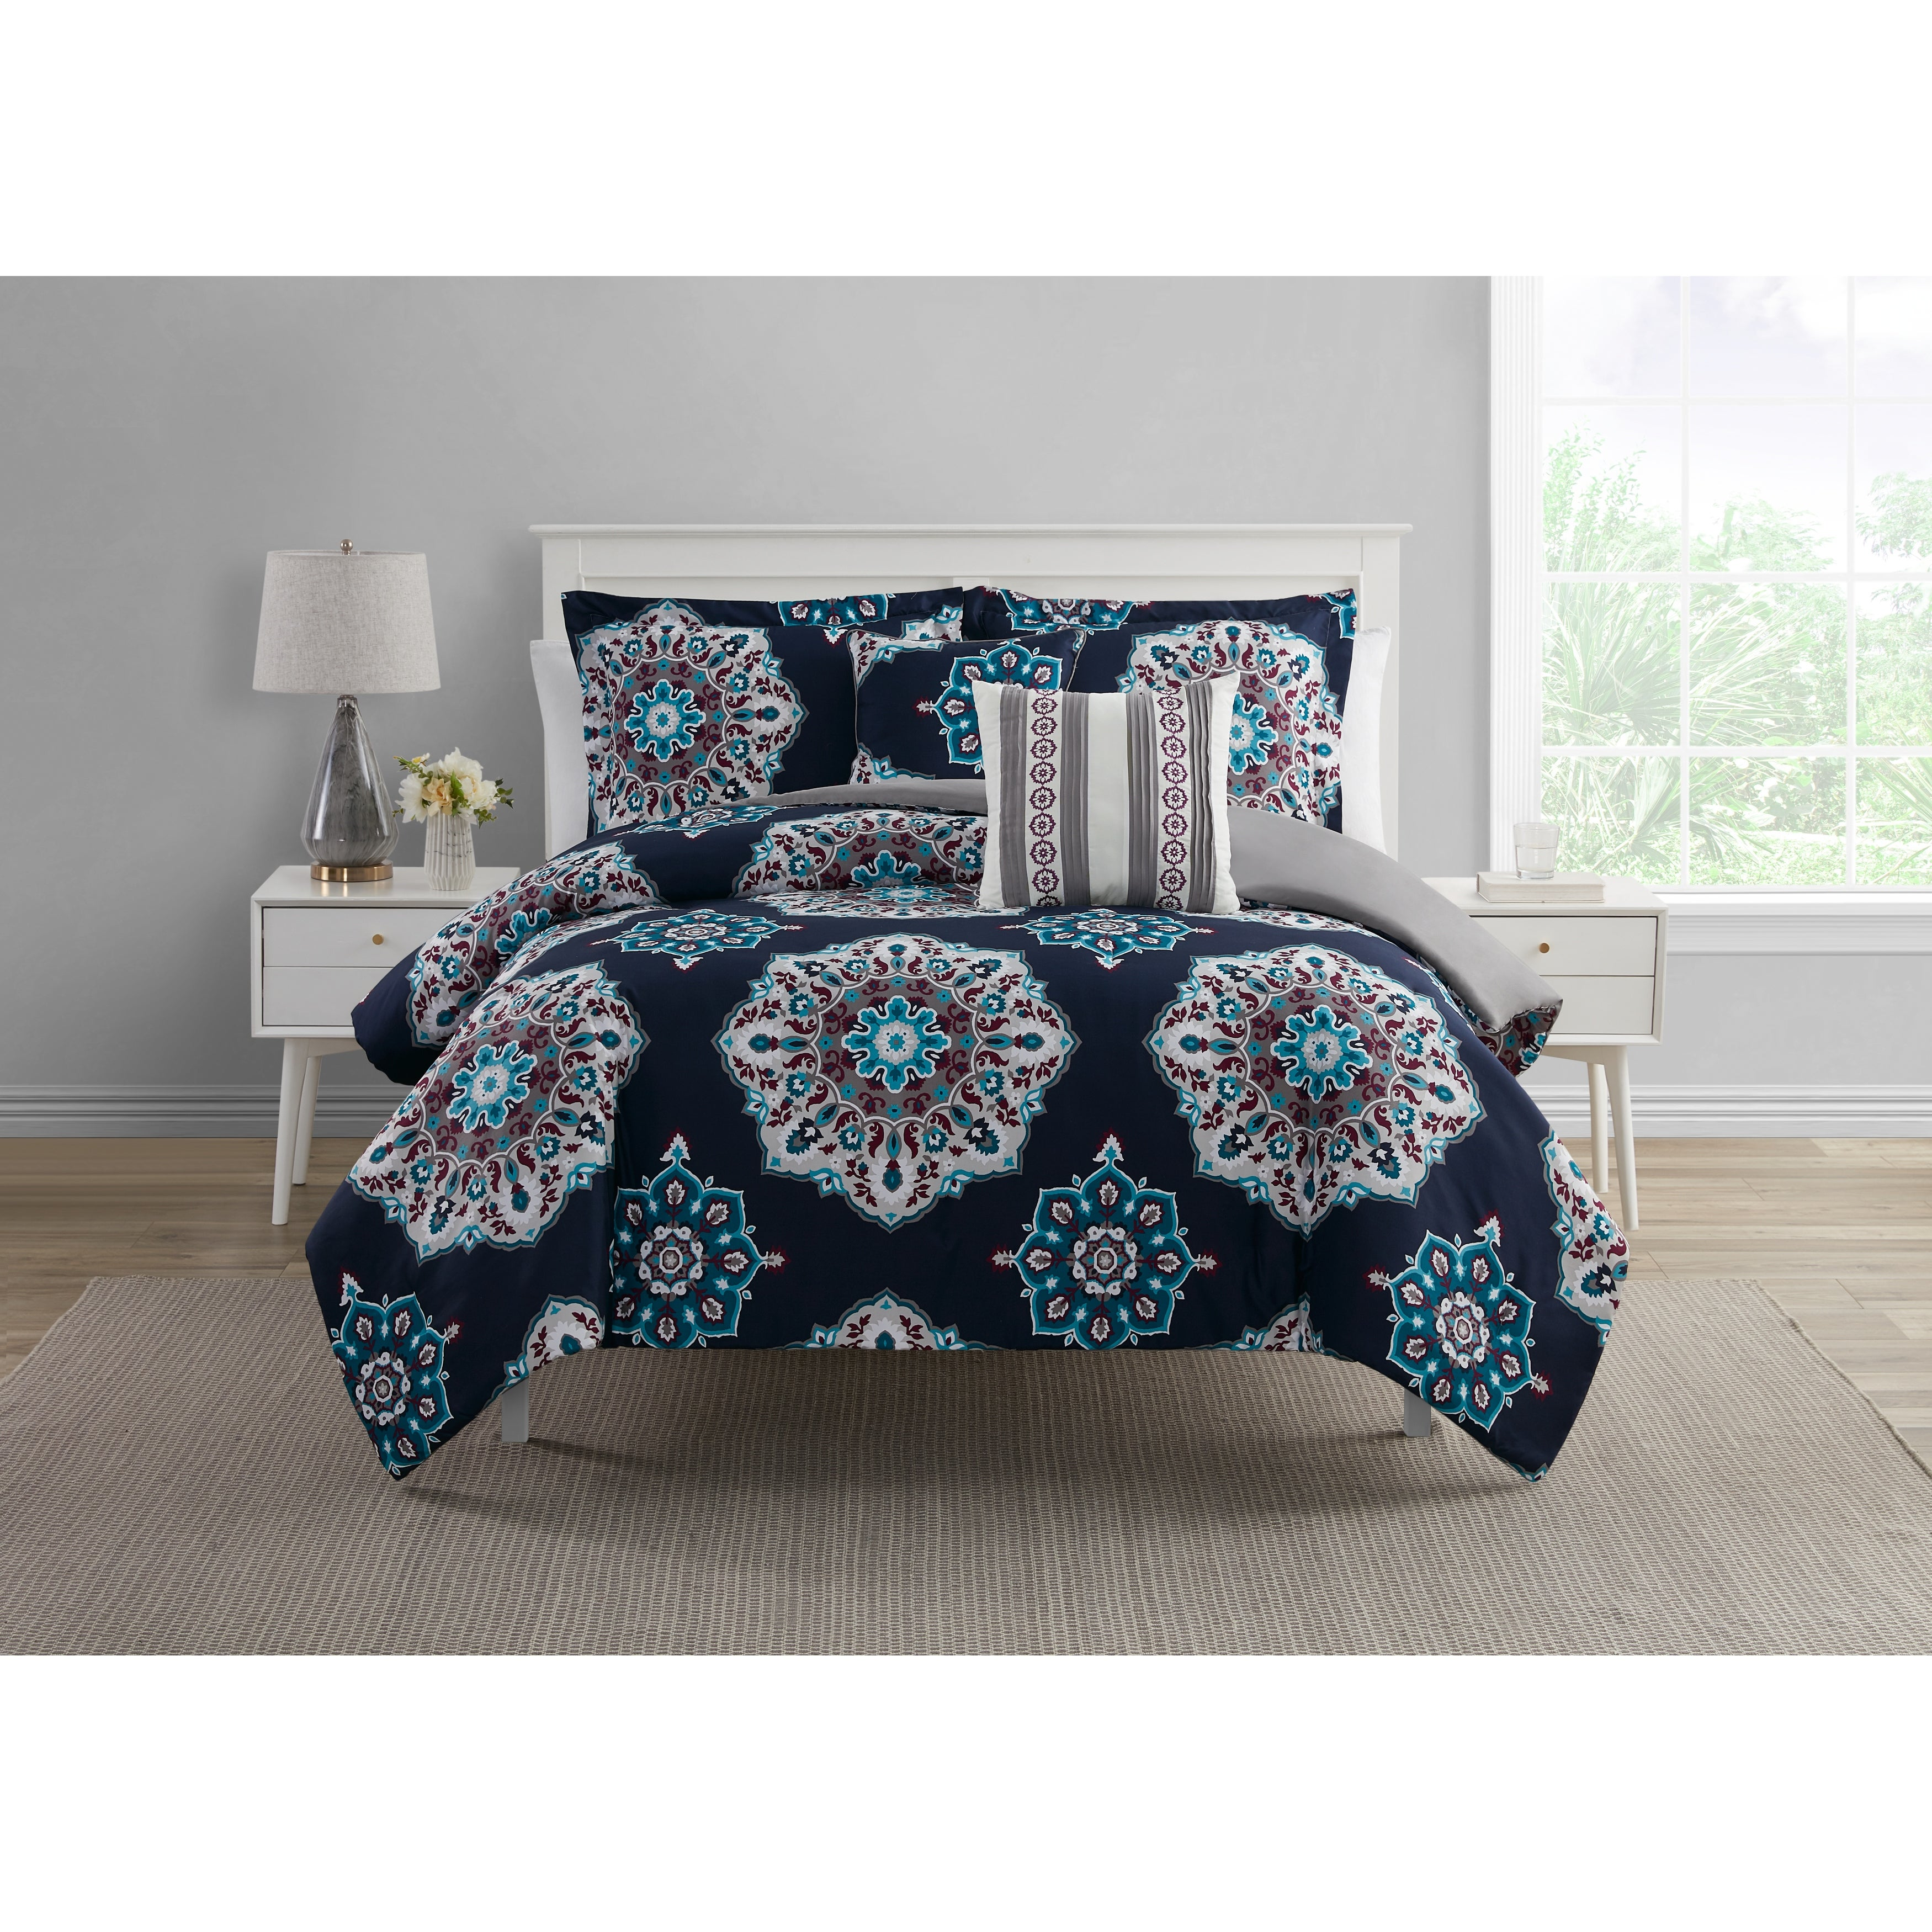 Sosa Navy Plum Teal Gray Medallion 5 Piece Comforter Set On Sale Overstock 31798434 Teal White Grey Full Queen